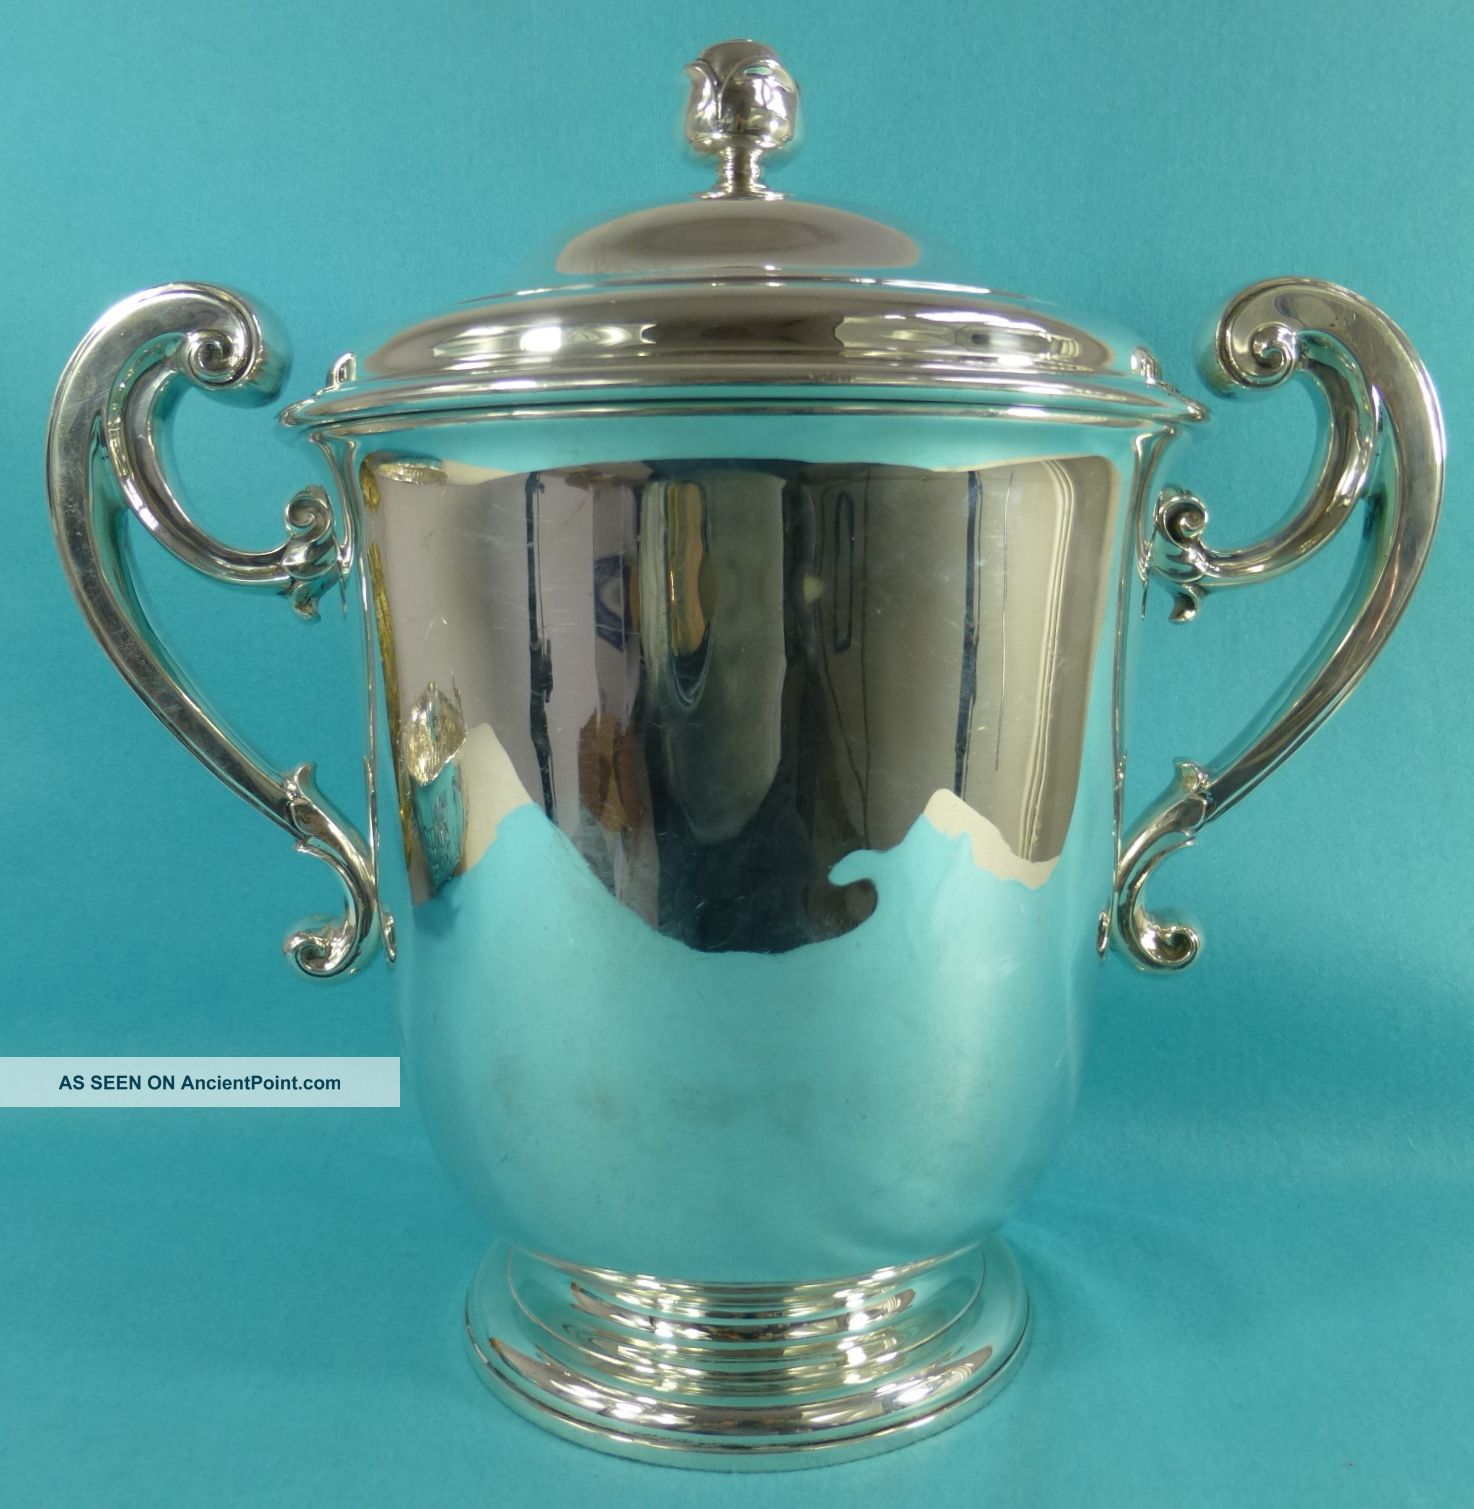 Magnificent Art Deco Sterling Silver Trophy Cup Huge 2294gms Richard Comyns 1936 Cups & Goblets photo